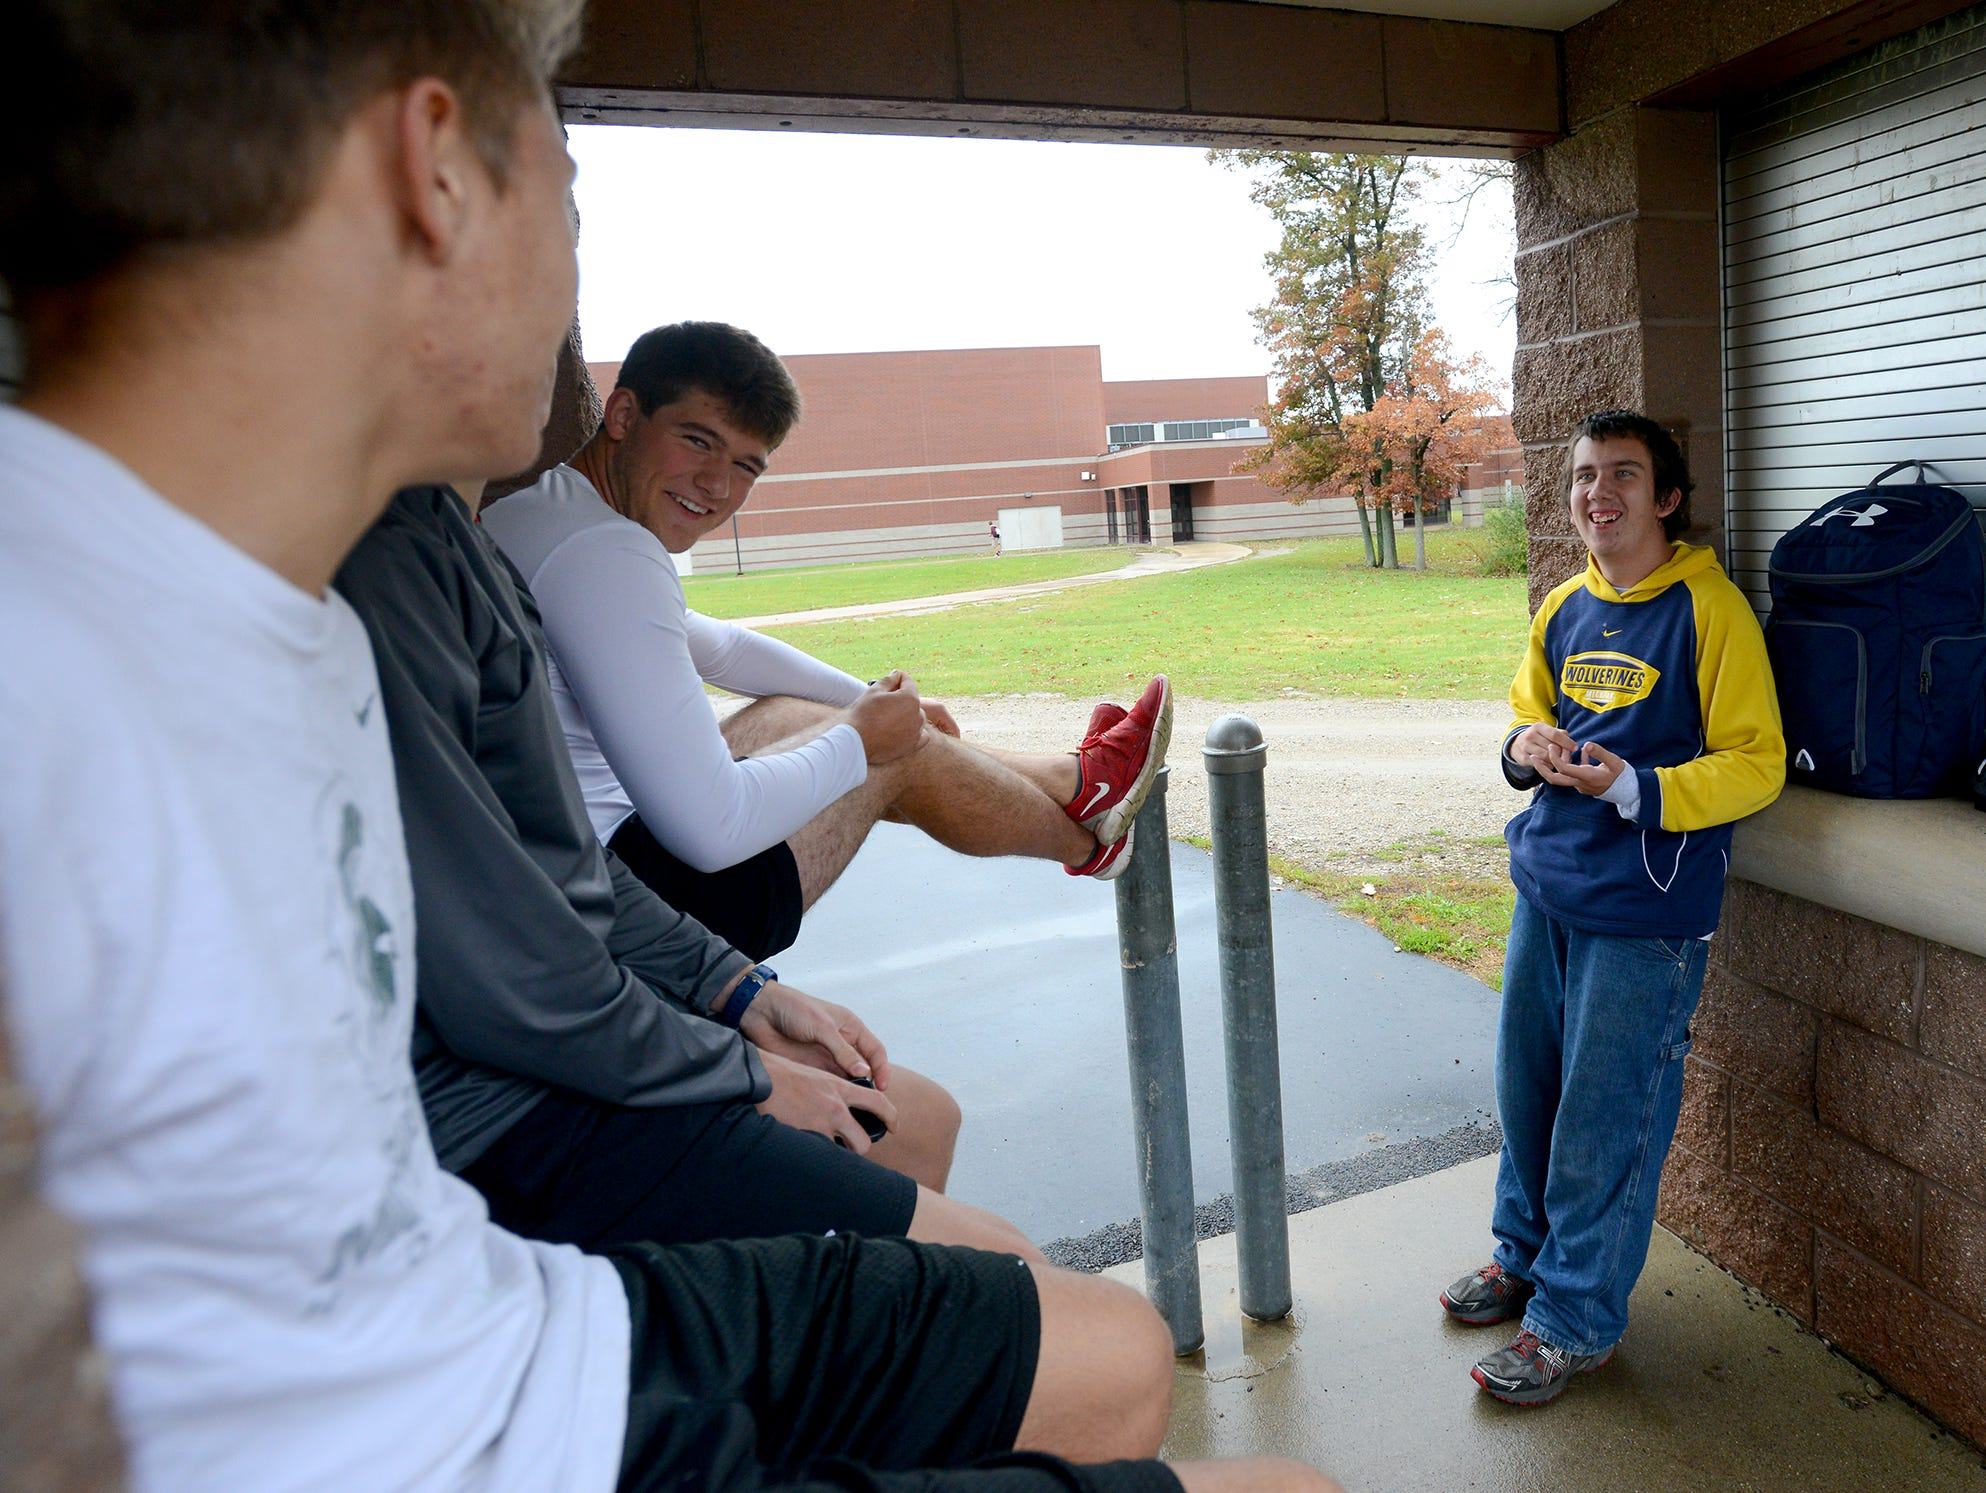 """Ray Latchaw talks and jokes around with teammates before practice for the Laingsburg cross country team Wednesday, October 28, 2015 at Laingsburg High School. Latchaw, a junior, is autistic, but runs, he says, to stay healthy and because he enjoys the """"me time"""" he gets."""